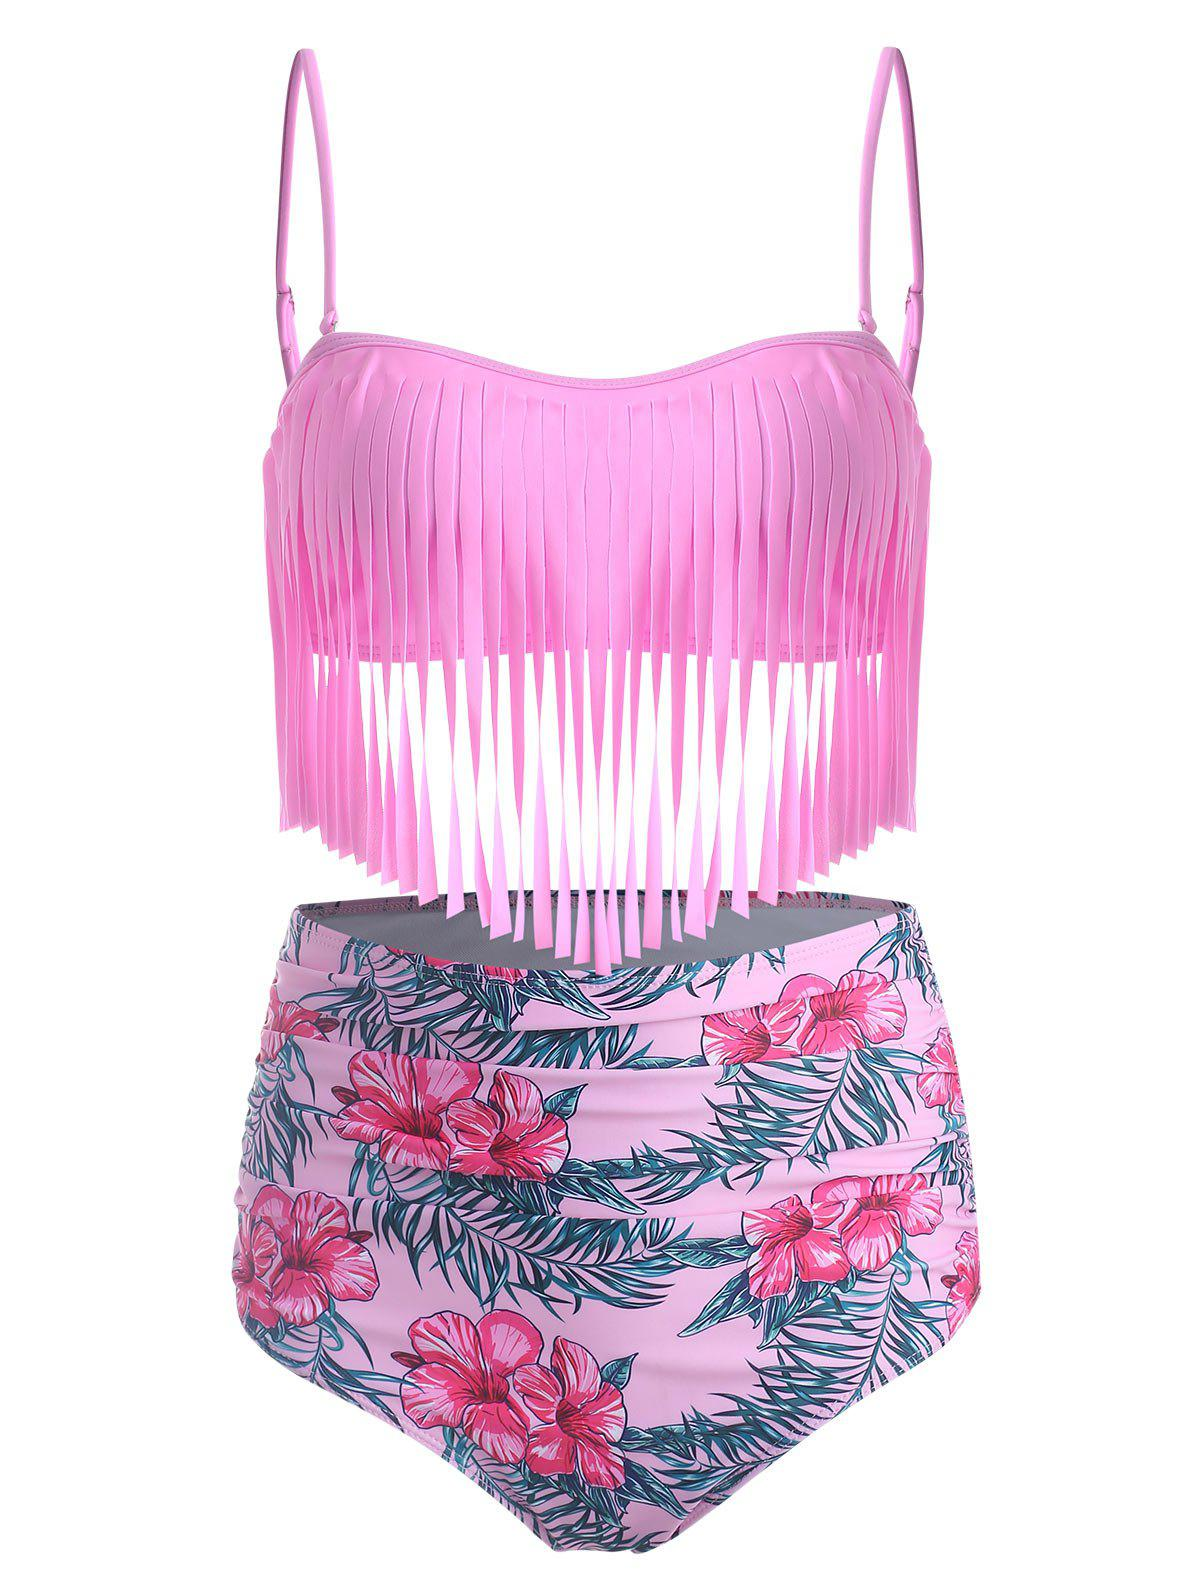 High Waisted Fringed Floral Bandeau Bikini Swimsuit - VIOLET RED 2XL